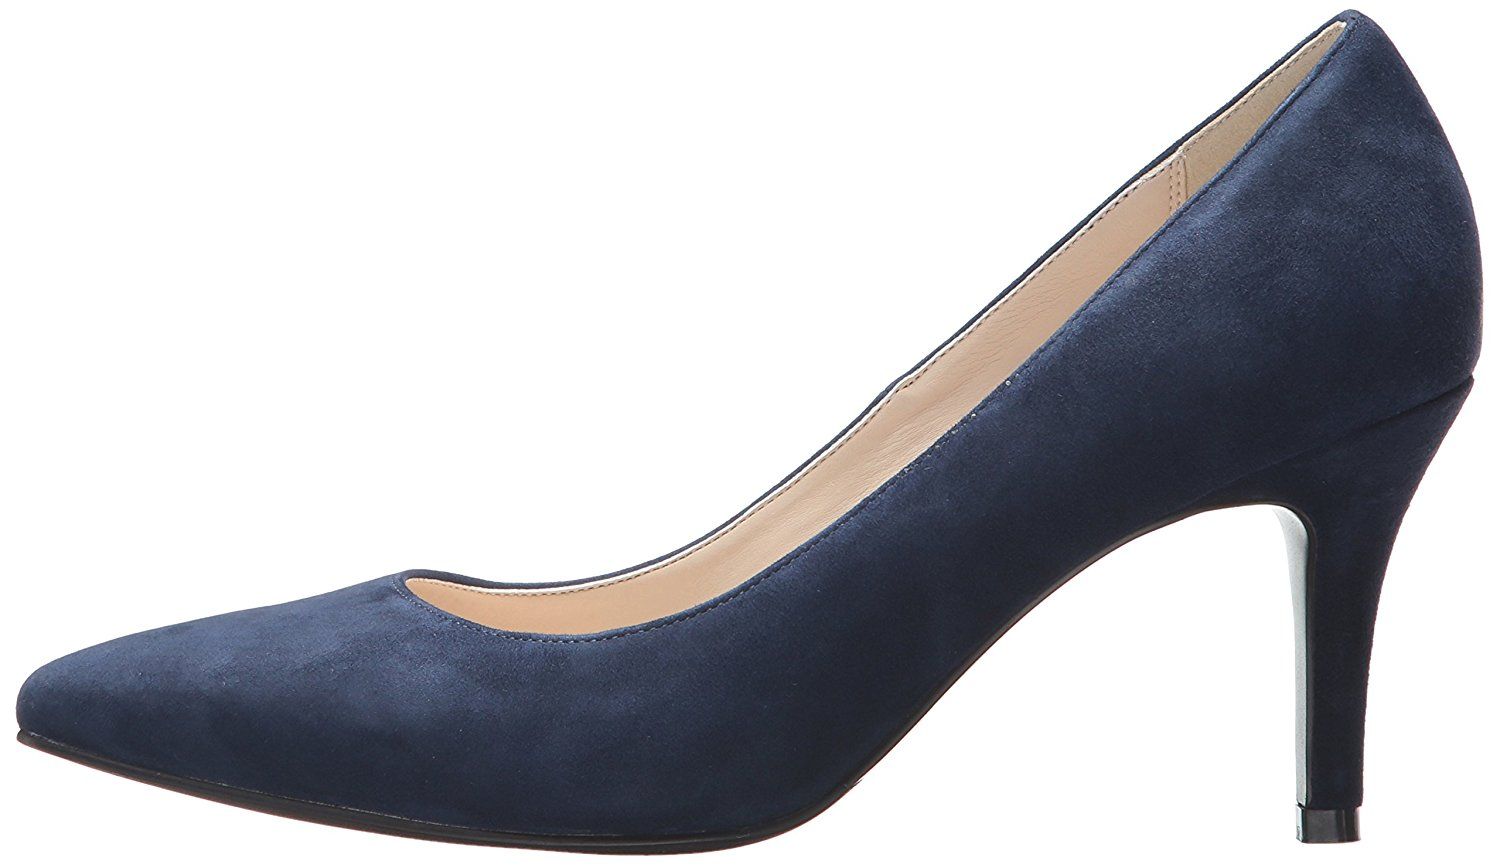 Cole Haan Womens Amelia Suede Pointed Toe Classic Blue/navy suede Size 8.5